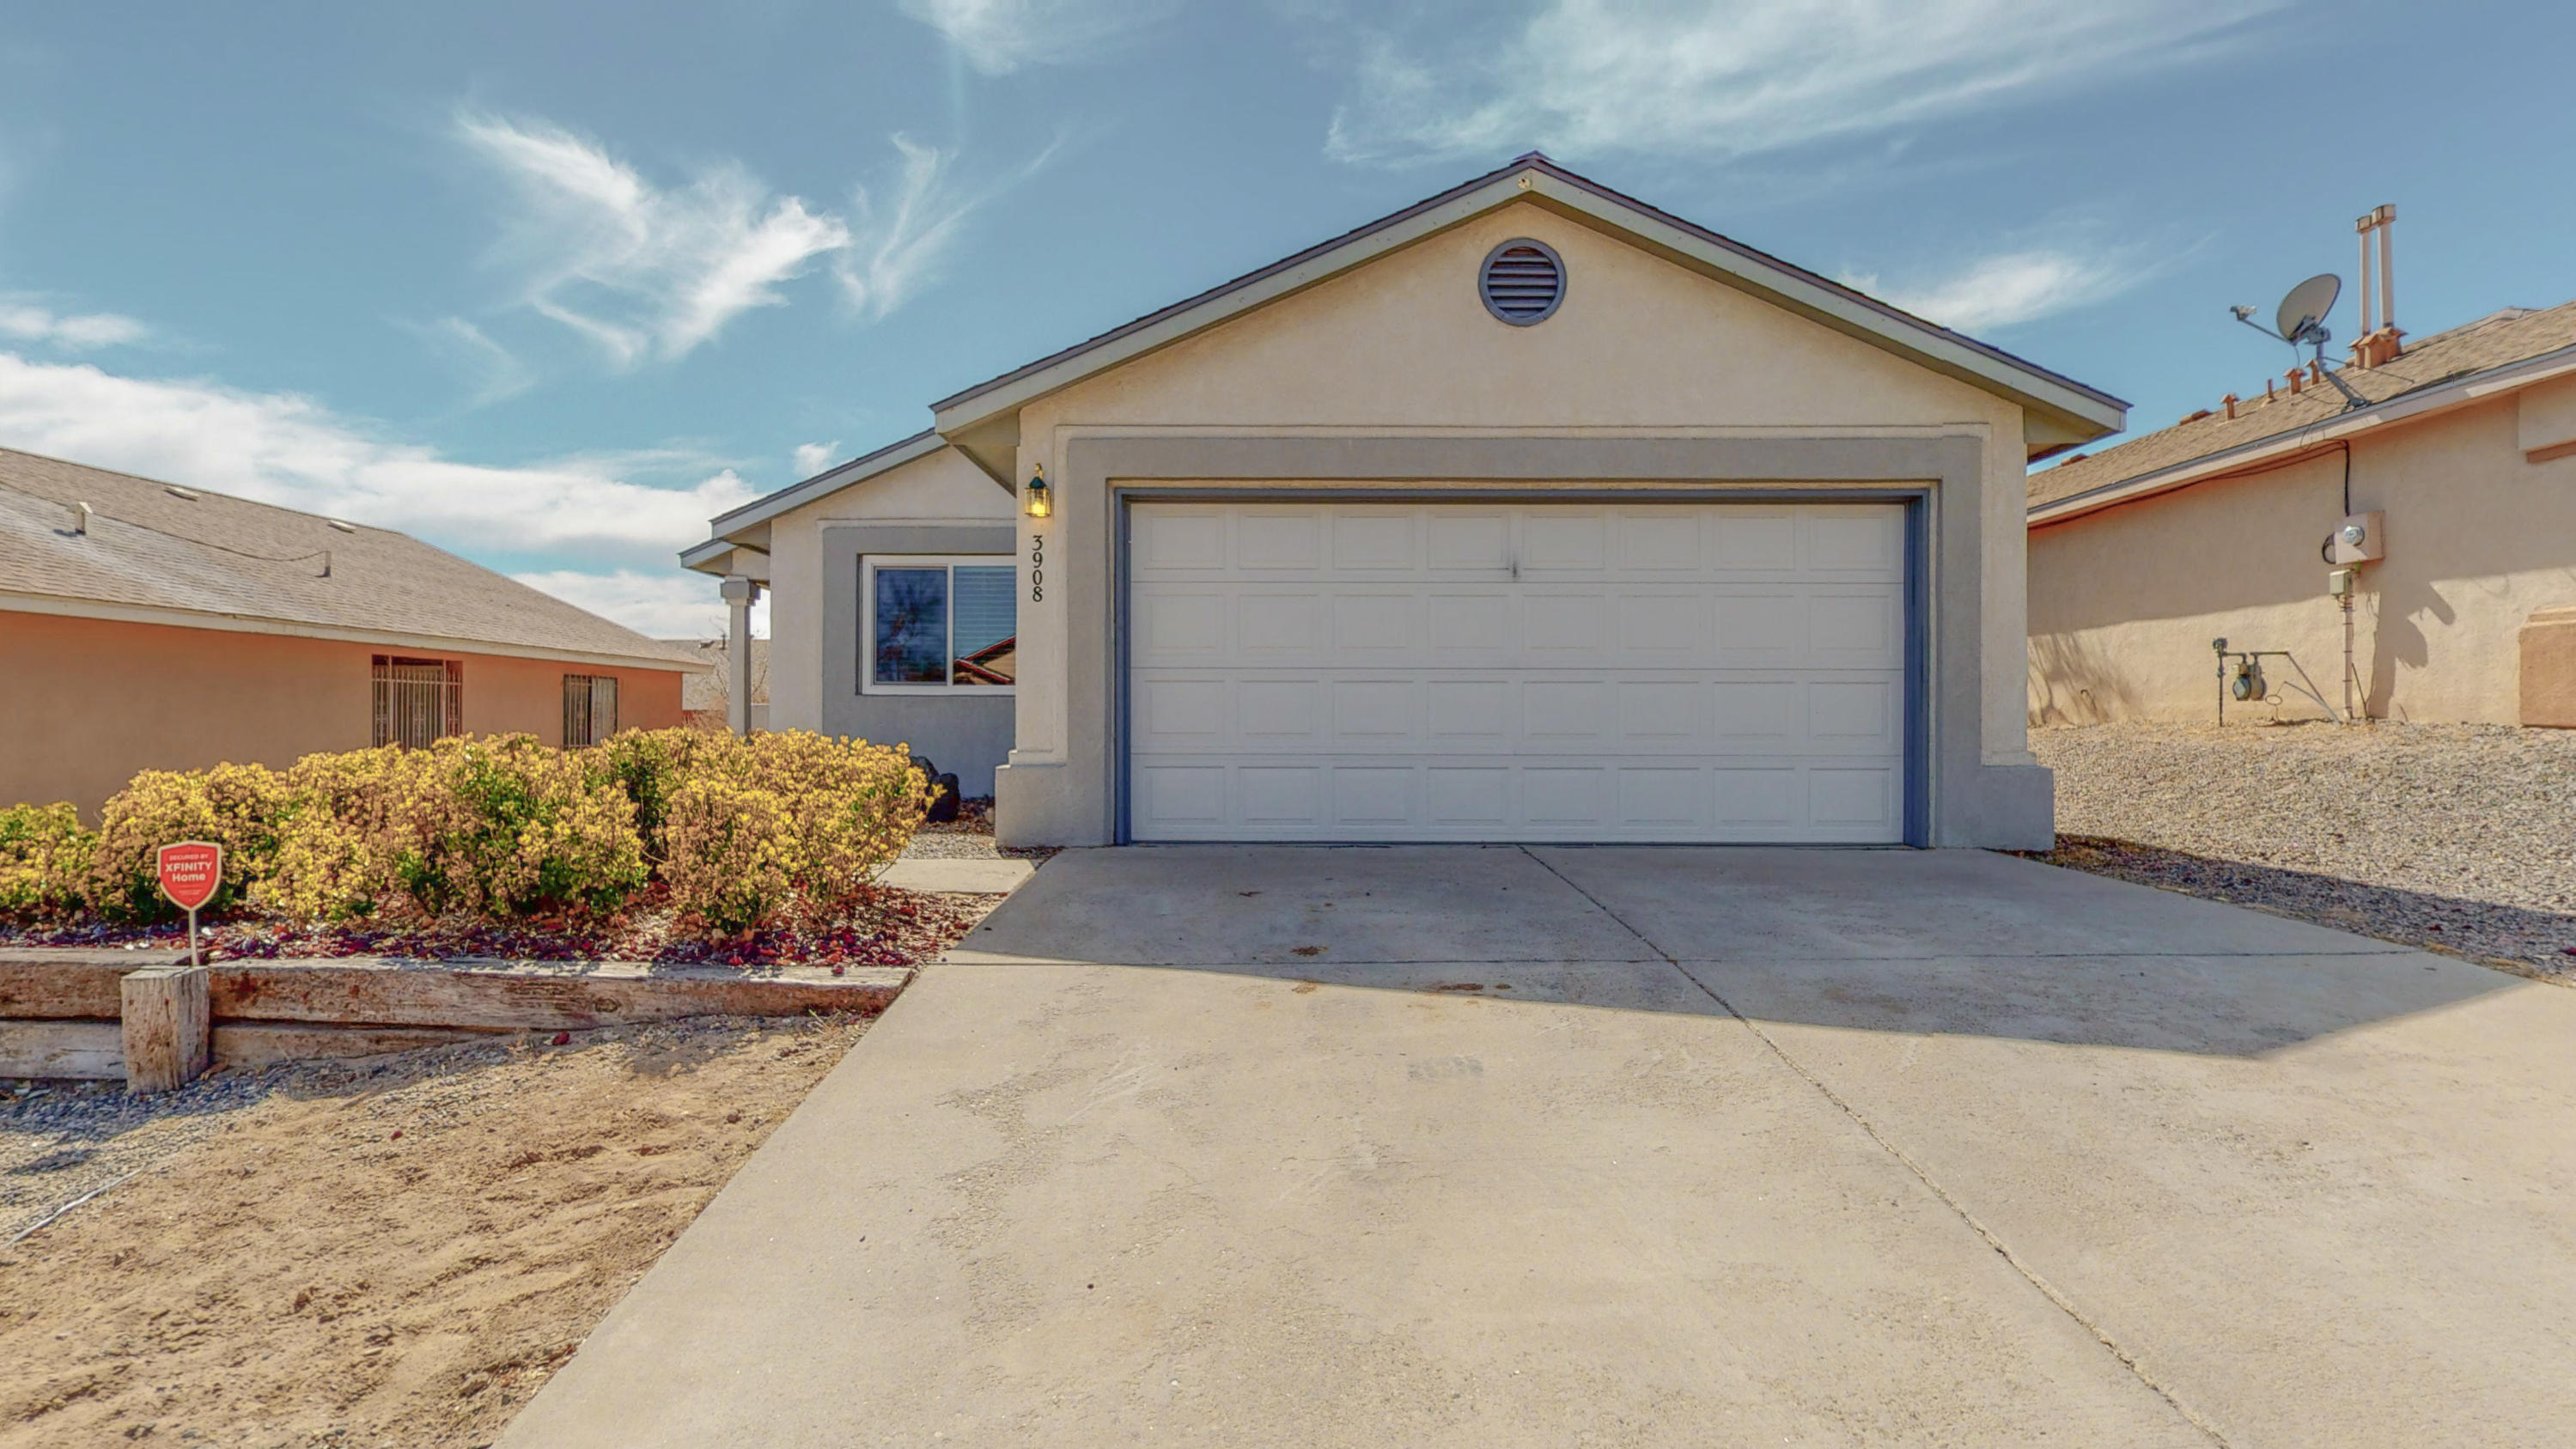 3908 SUNTRAIL Road, Albuquerque NM 87114